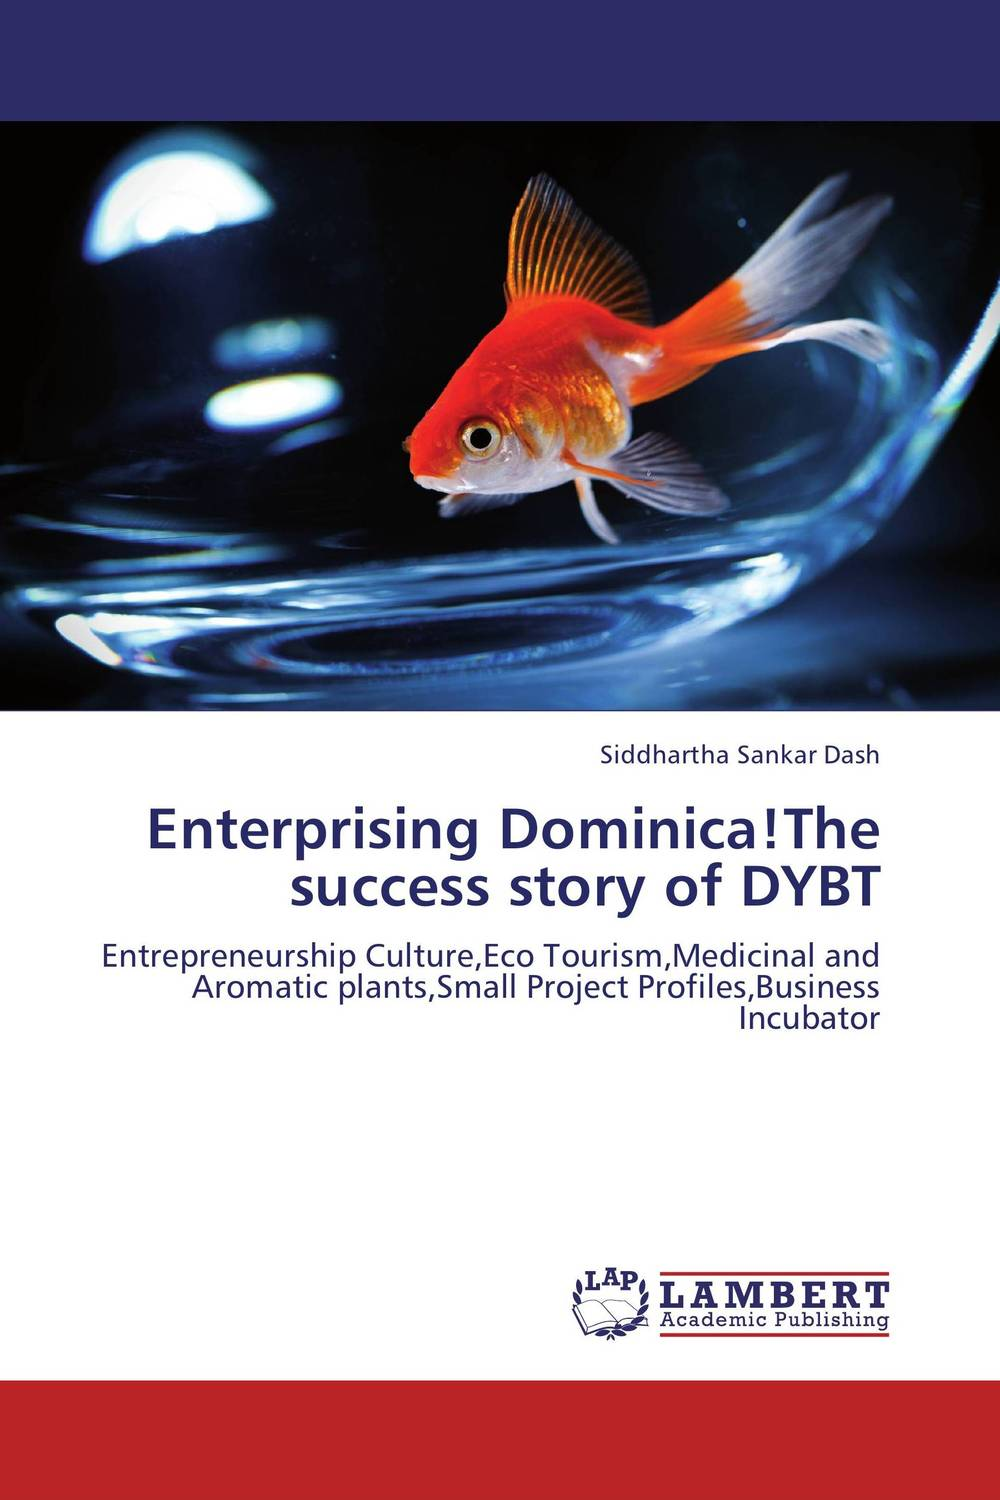 Enterprising Dominica!The success story of DYBT recognizing the role men play in the entrepreneurial success of women